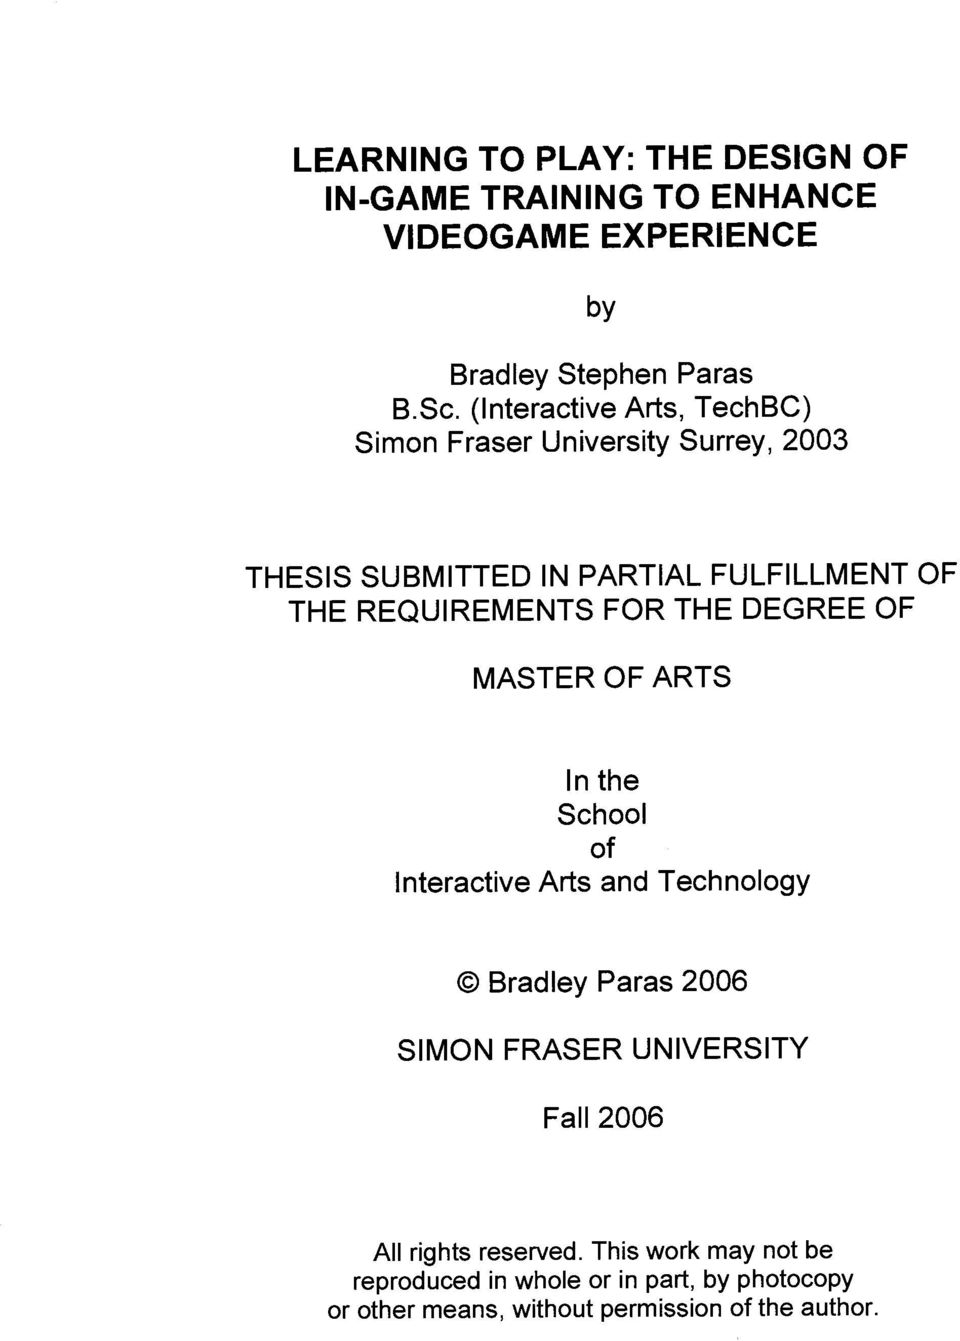 FOR THE DEGREE OF MASTER OF ARTS In the School of Interactive Arts and Technology O Bradley Paras 2006 SIMON FRASER